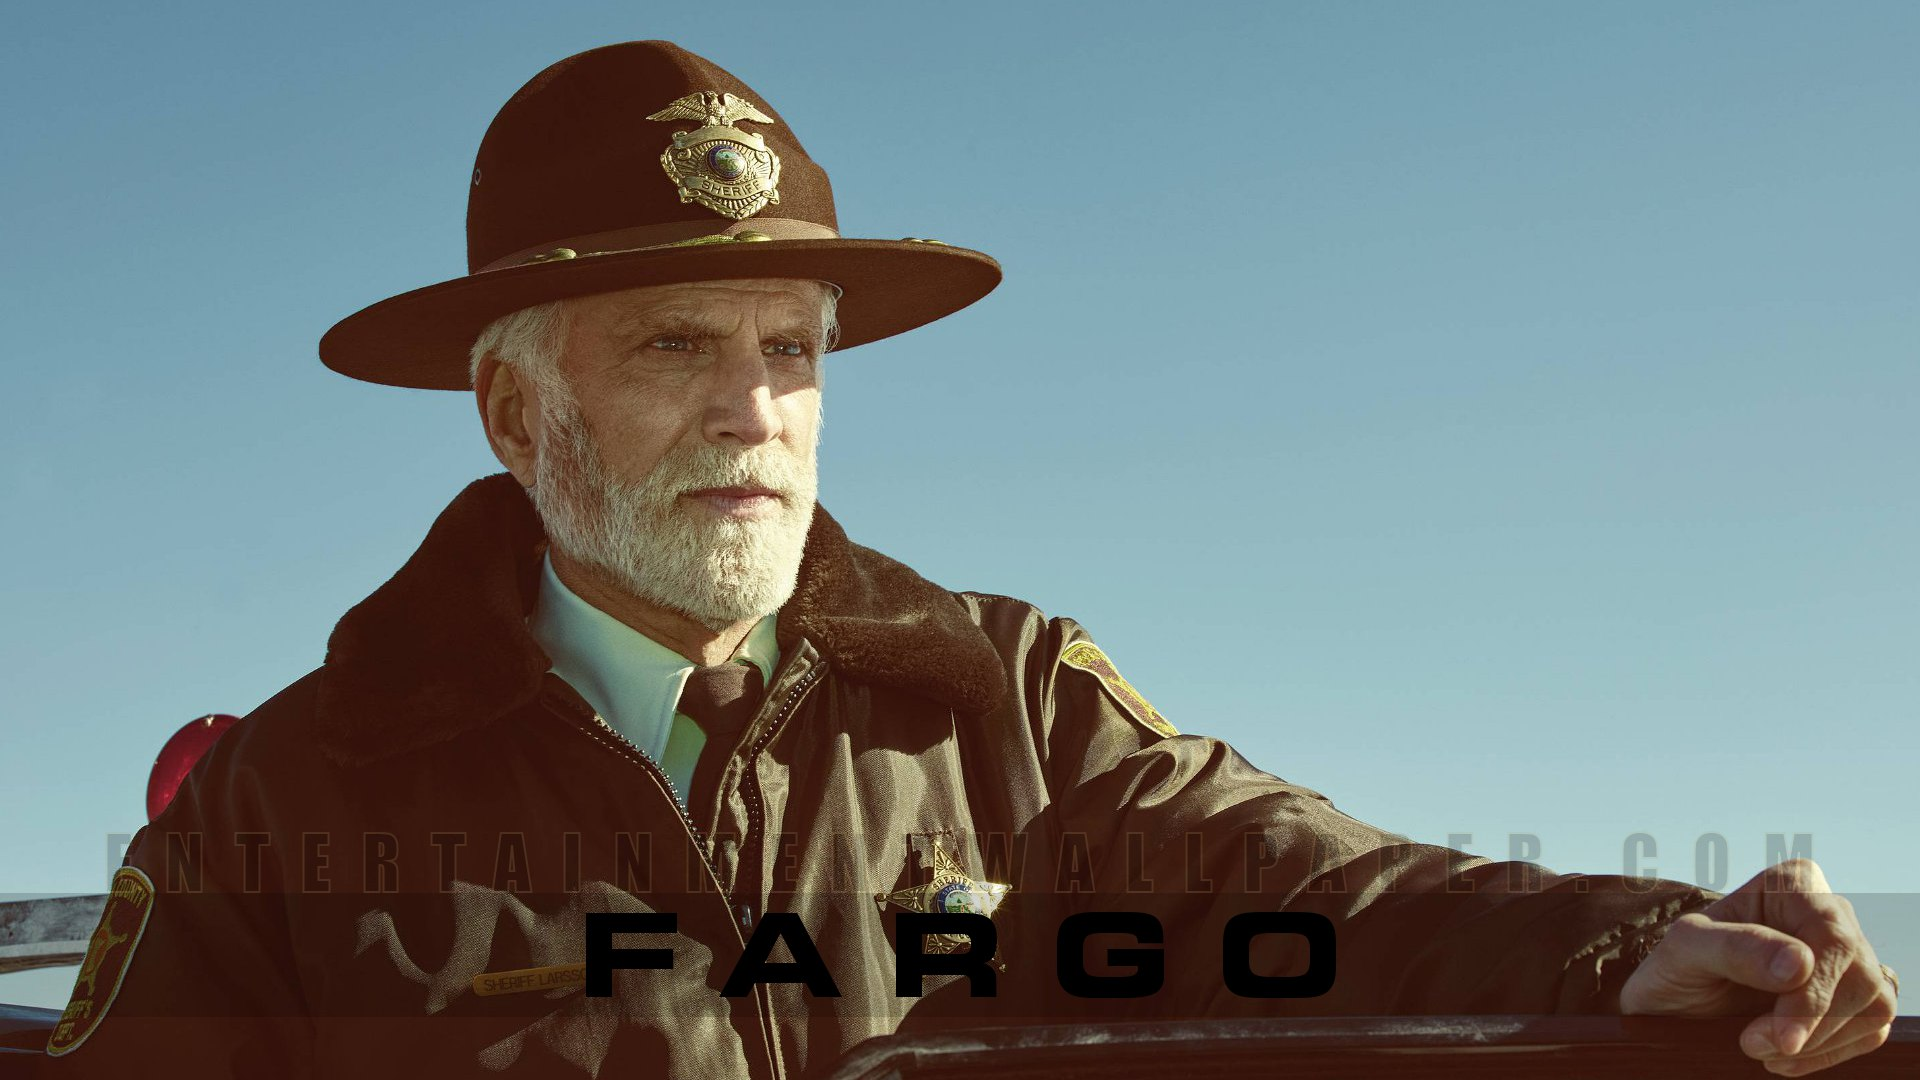 Fargo Season 2 Wallpapers - Fargo (TV Series) Wallpaper